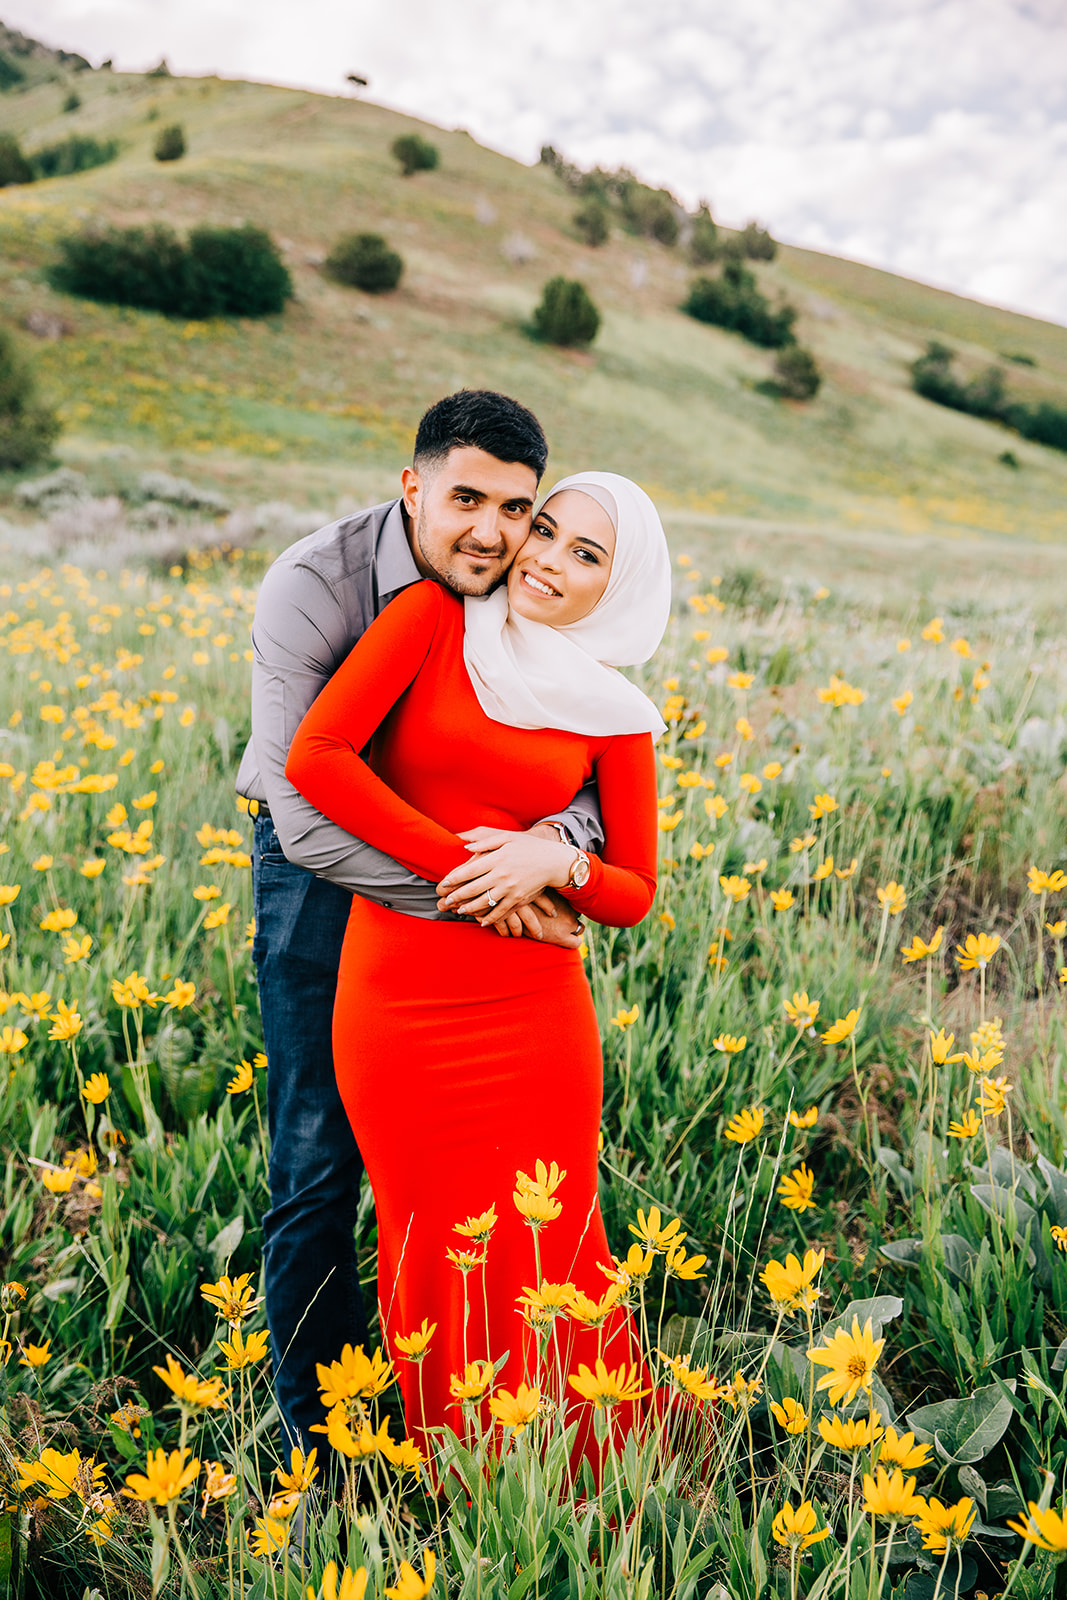 Professional engagement pictures in a beautiful field of yellow wildflowers in the rolling hills of north logan utah by bella alder photography couples photographer in cache valley #bellaalderphoto #engagements #utahengagements #engagementphotographer #engagementphotography #loganutahengagementphotographer #utahengagements #utahengagementphotographer #mountains #mountainengagements #weddingplanning #utahwedding